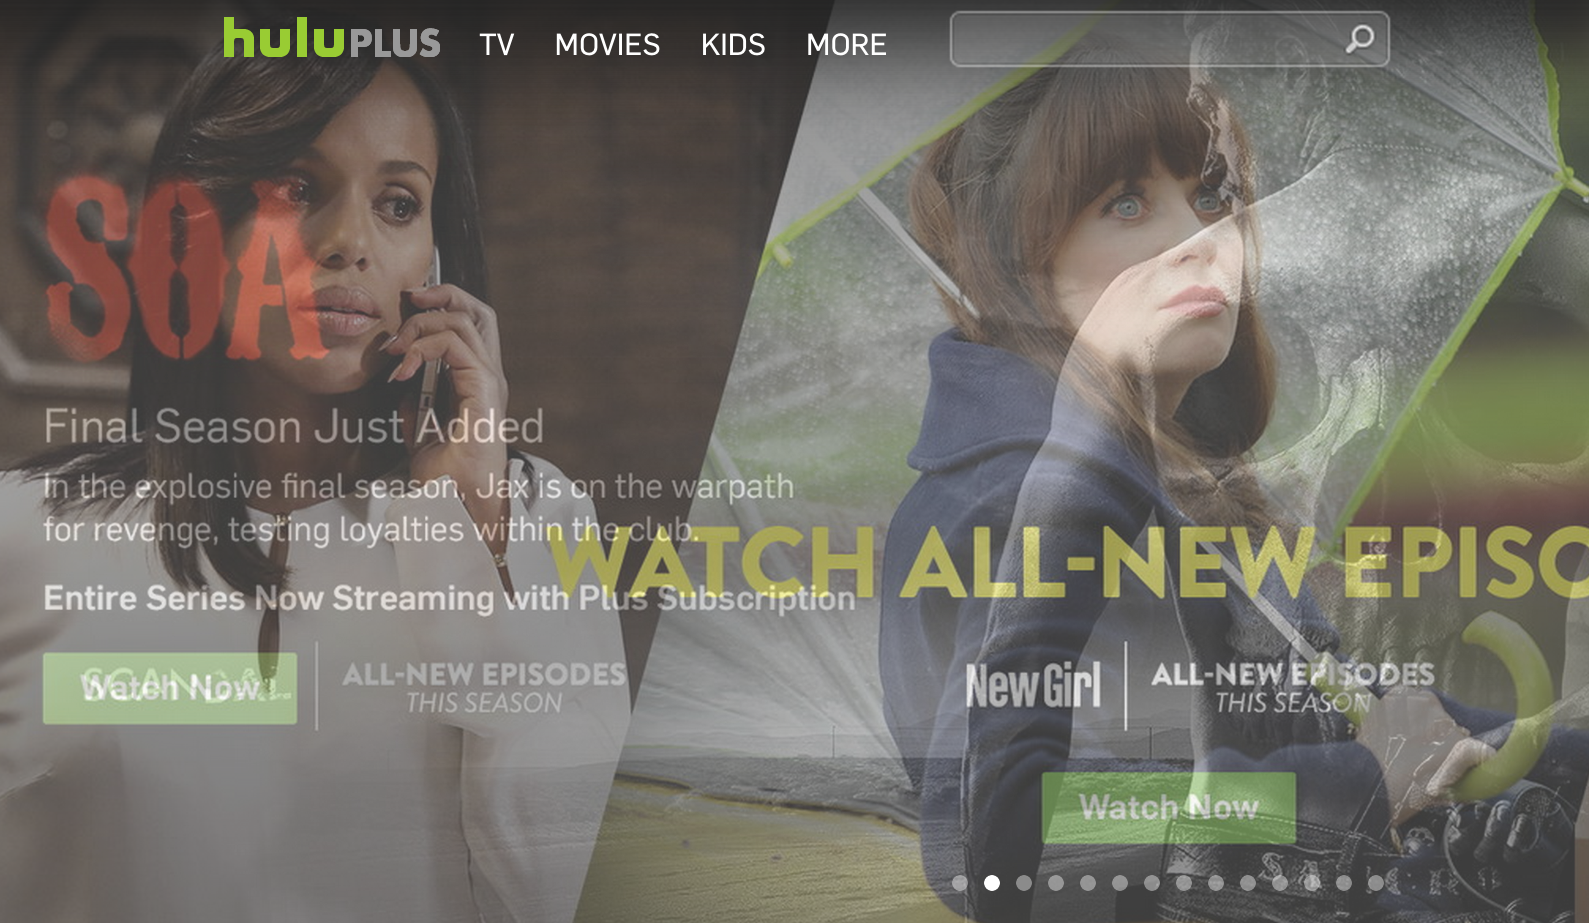 Cablevision Will Sell Hulu Plus Subscriptions Directly To Broadband Customers